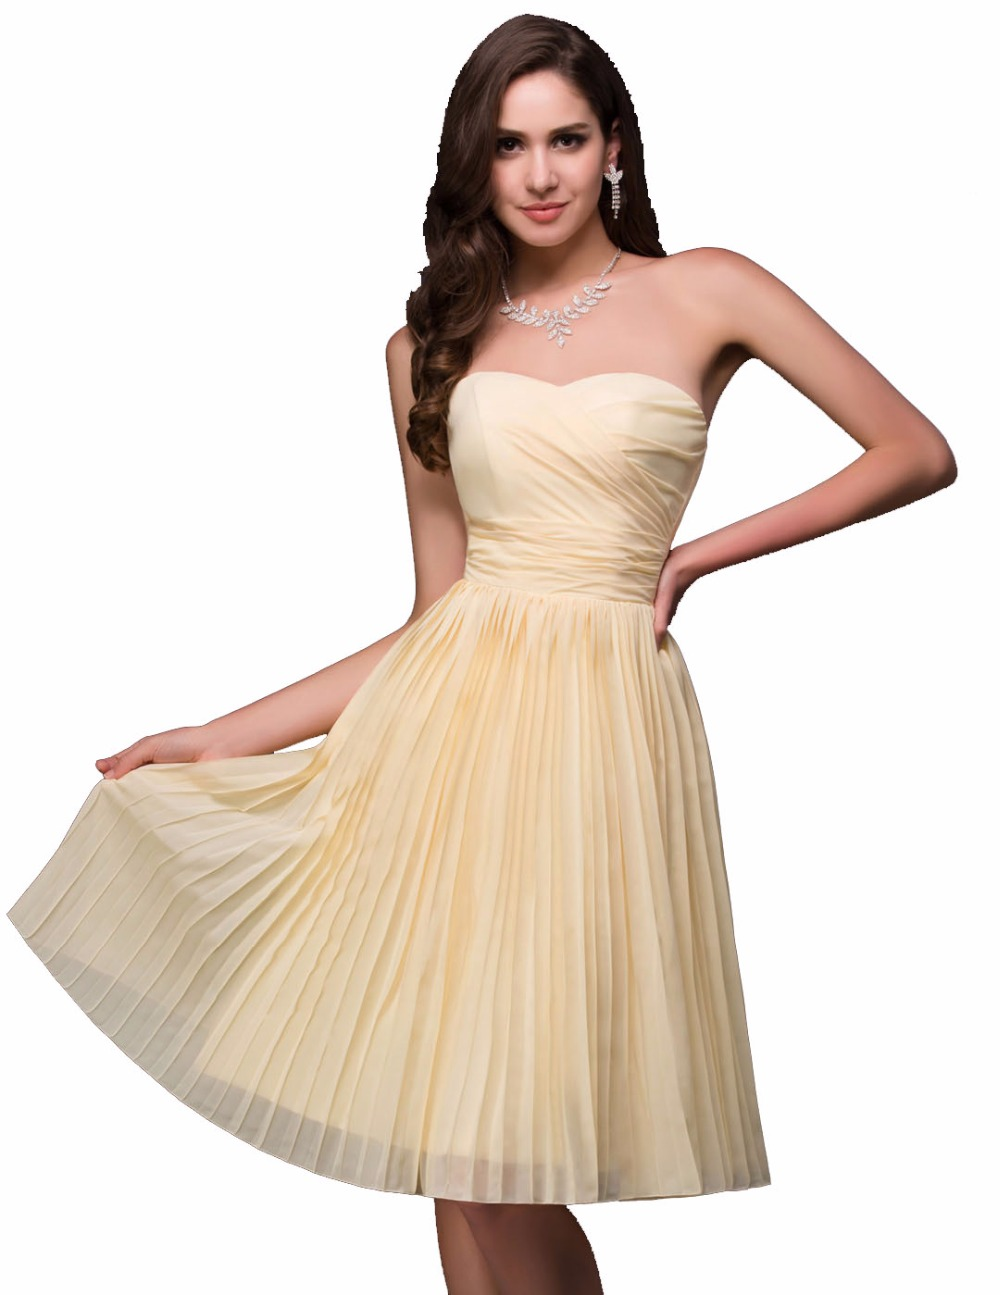 Cheap bridesmaids dresses under 50 images braidsmaid dress cheap bridesmaid dresses under 50 2016 grace karin strapless cheap bridesmaid dresses under 50 2016 grace ombrellifo Gallery